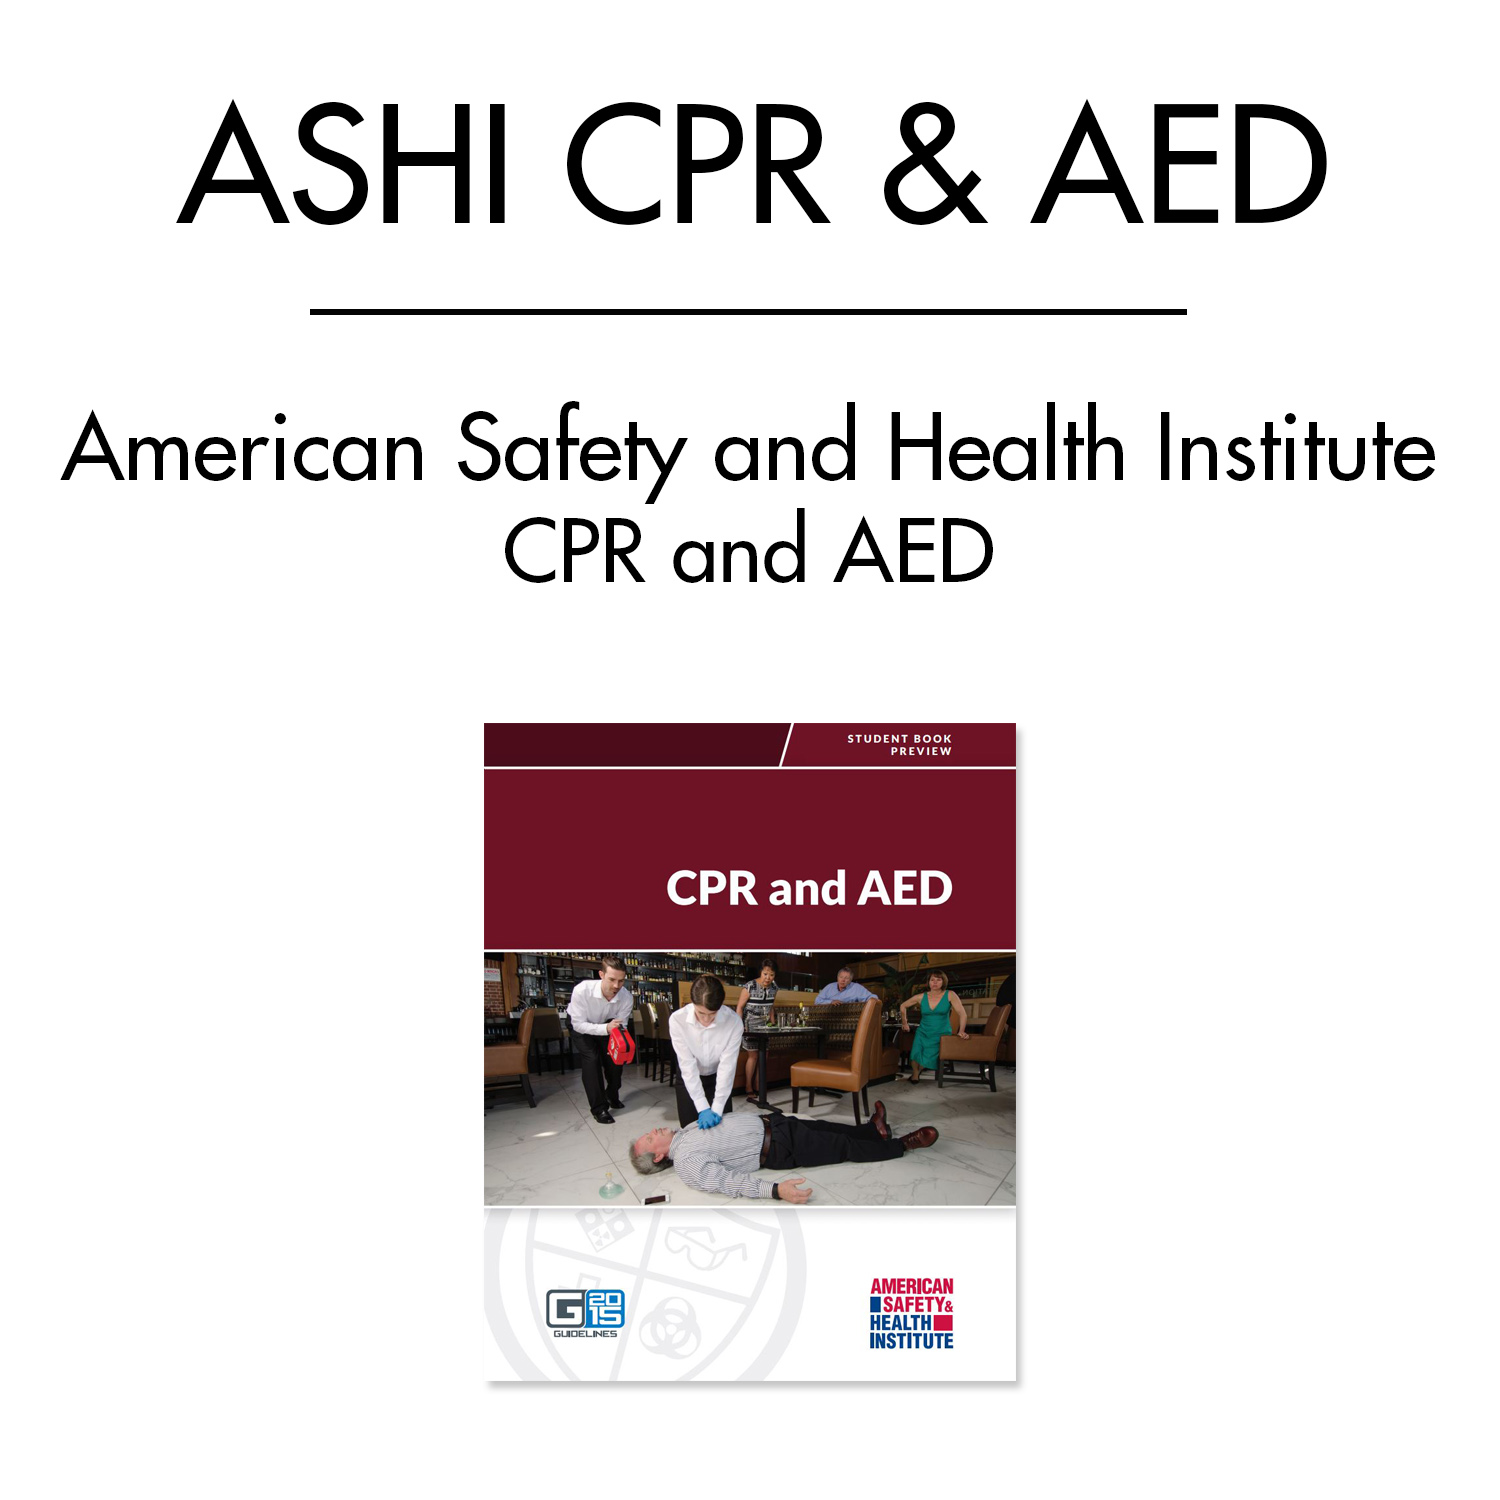 ASHI CPR and AED Course